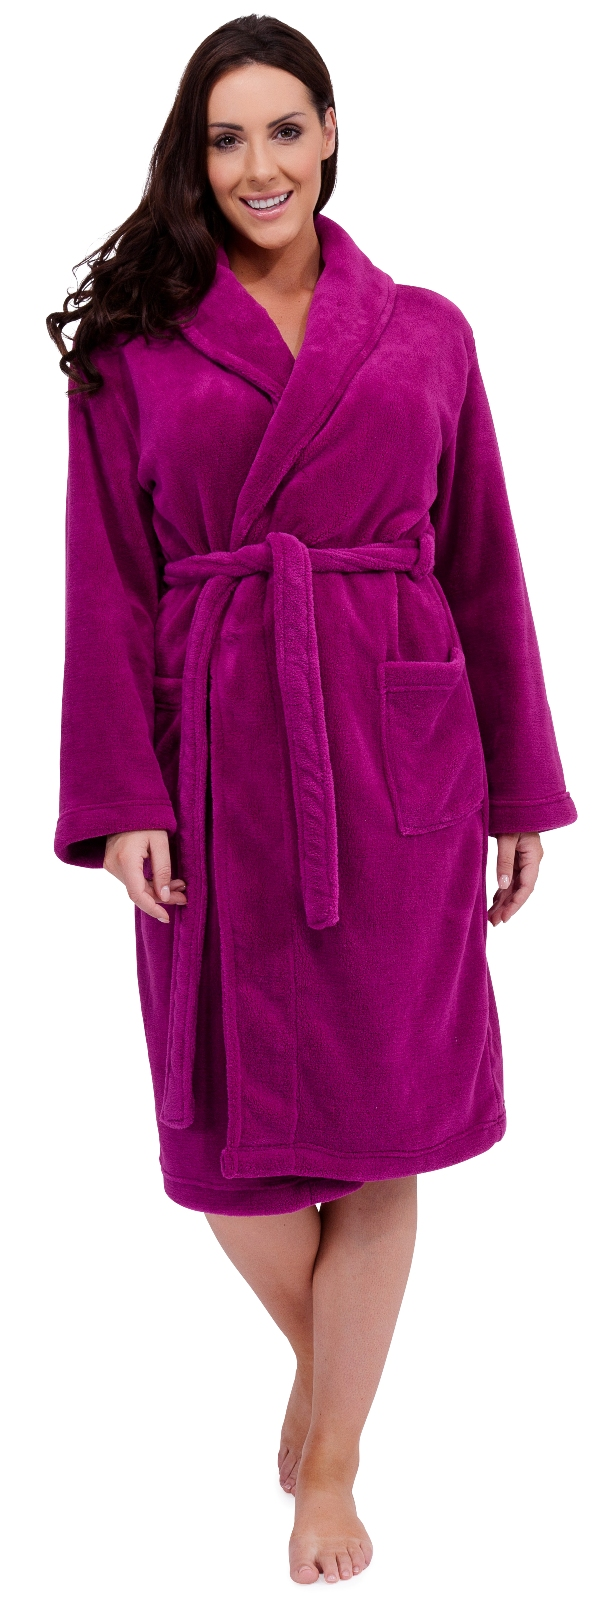 Find great deals on eBay for womens bathrobe. Shop with confidence.